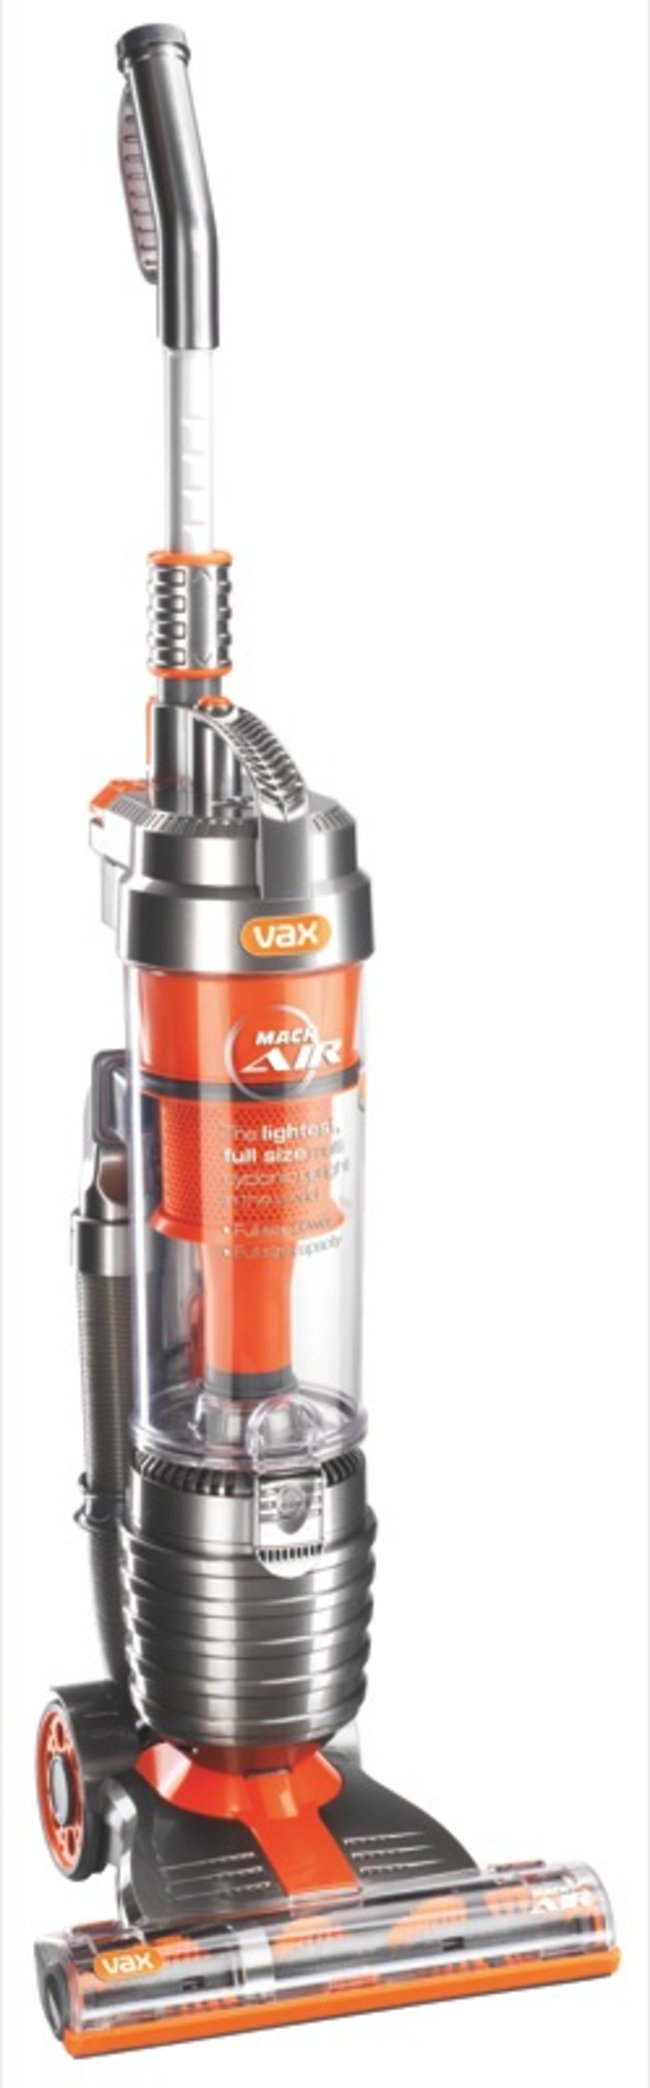 Vax Mach Air vacuum cleaner   - photo 2